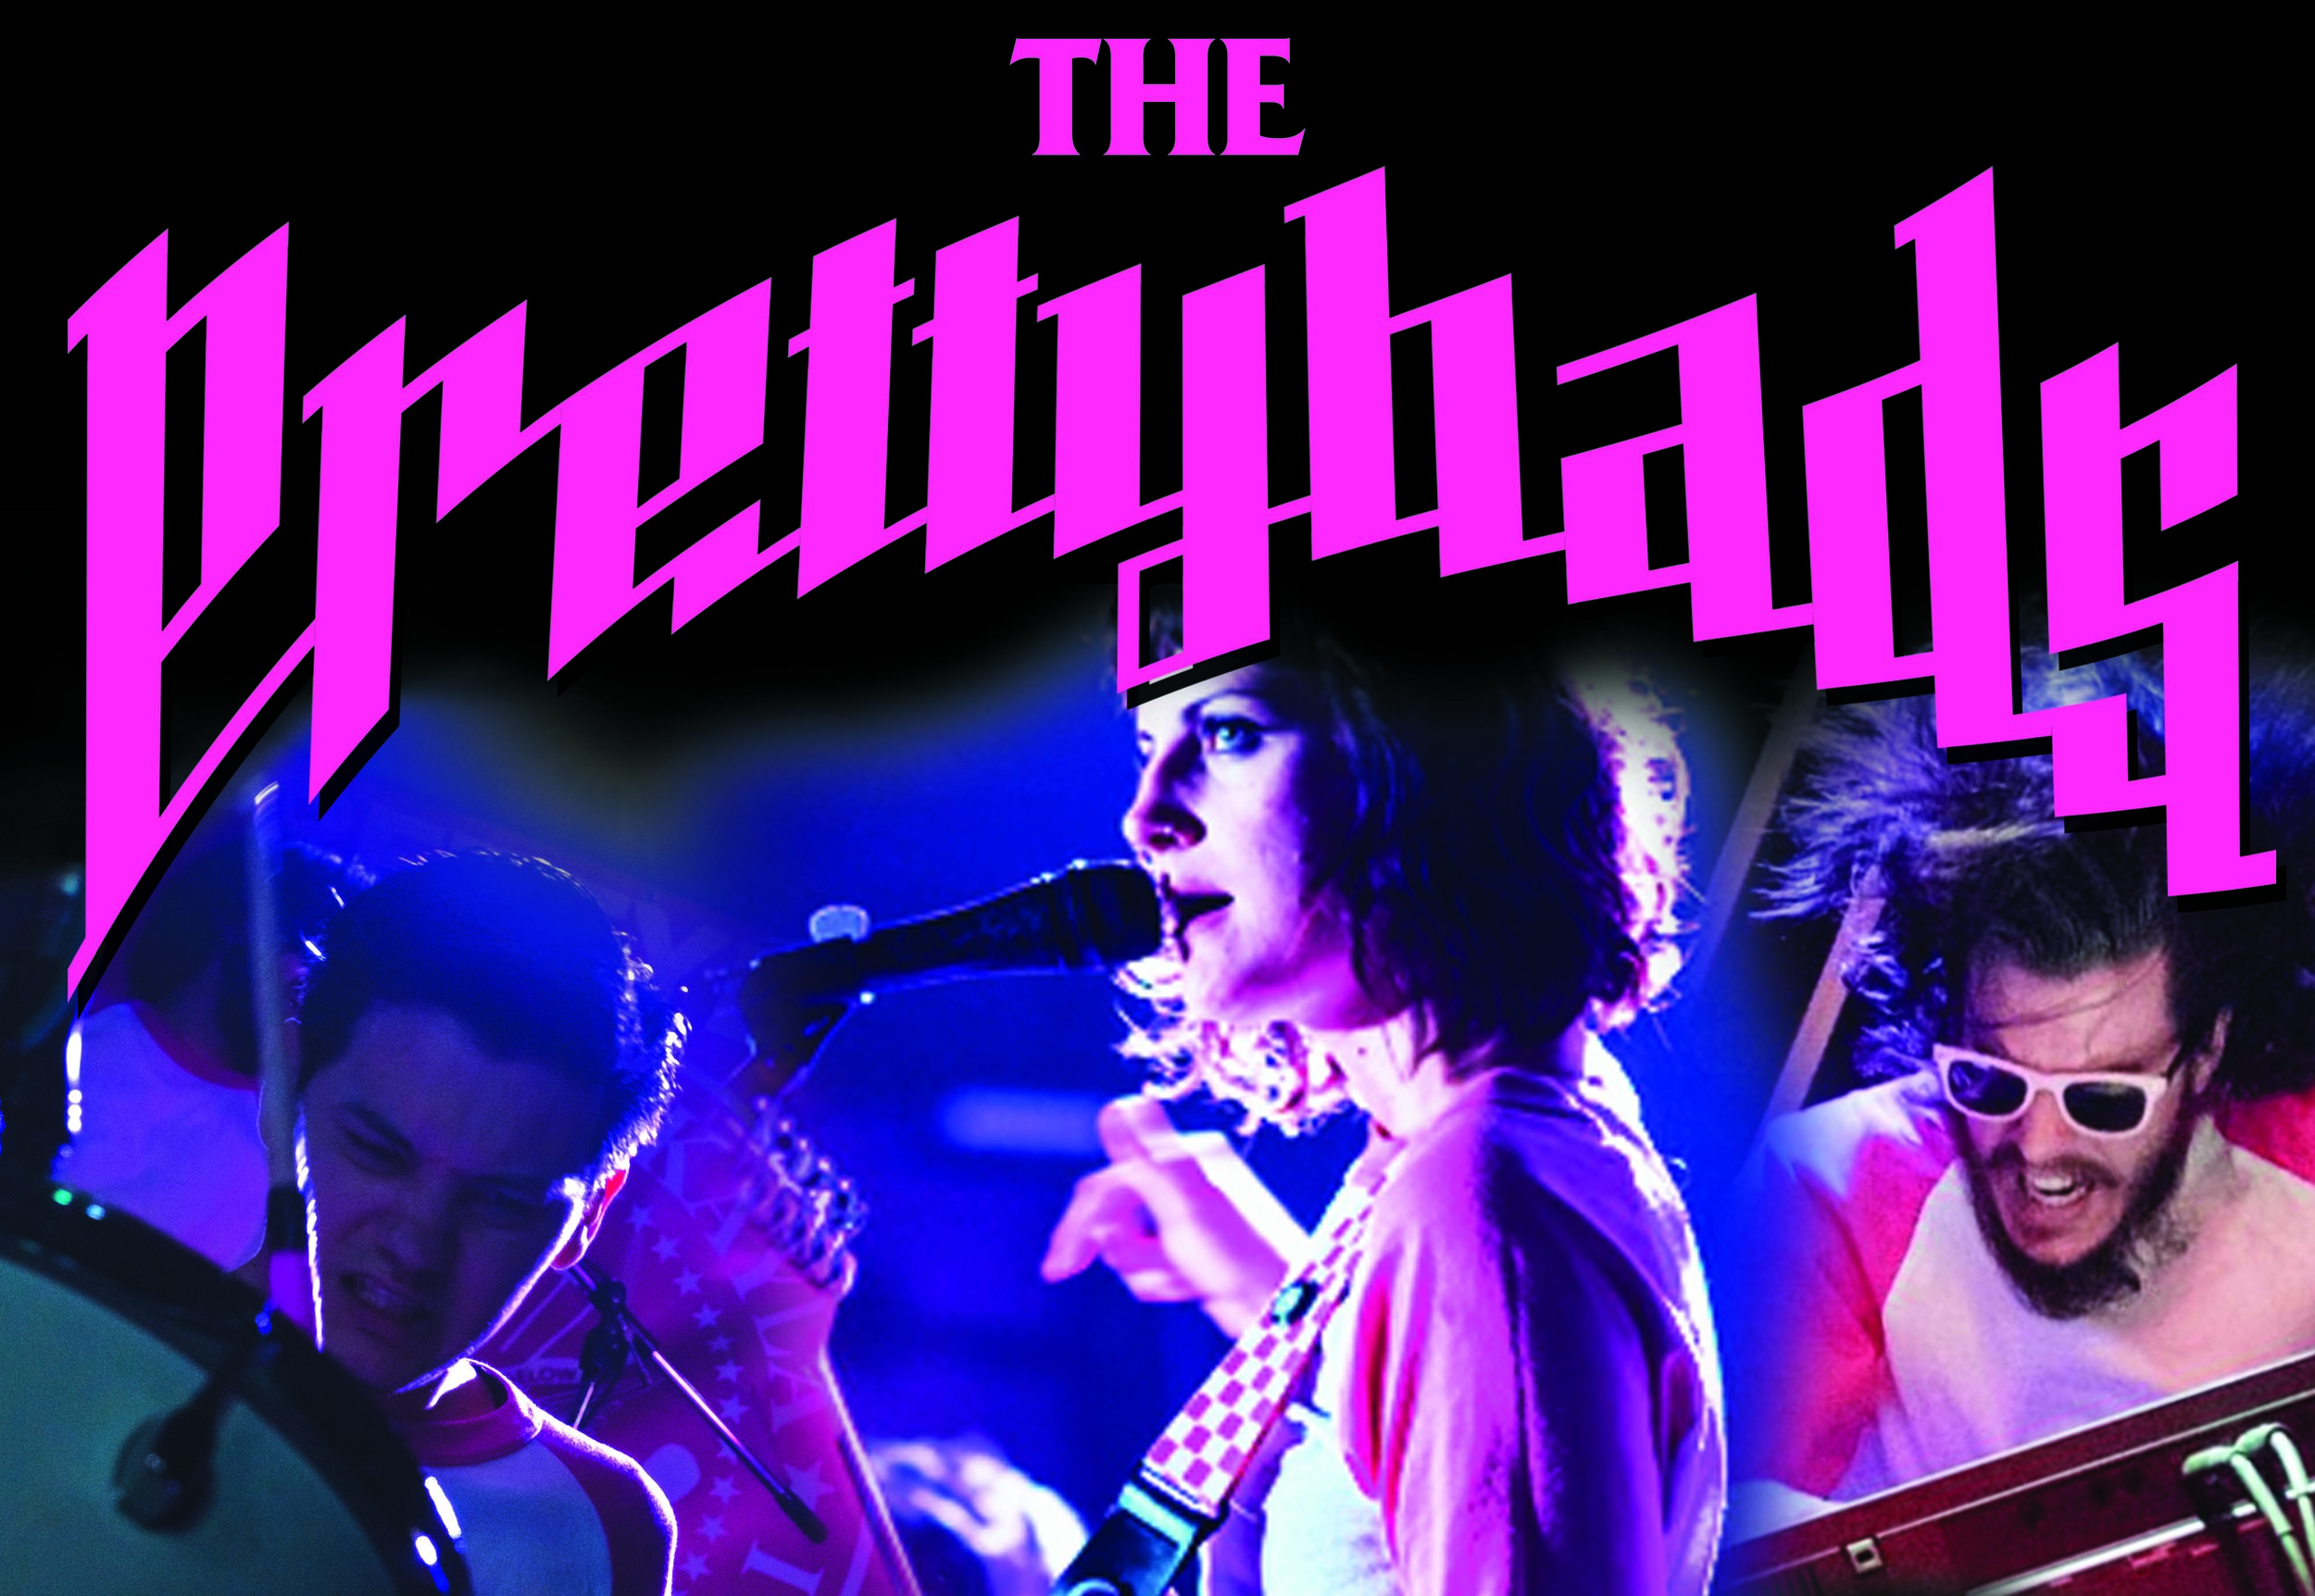 the_Prettybads_band_members_with logo2.jpg